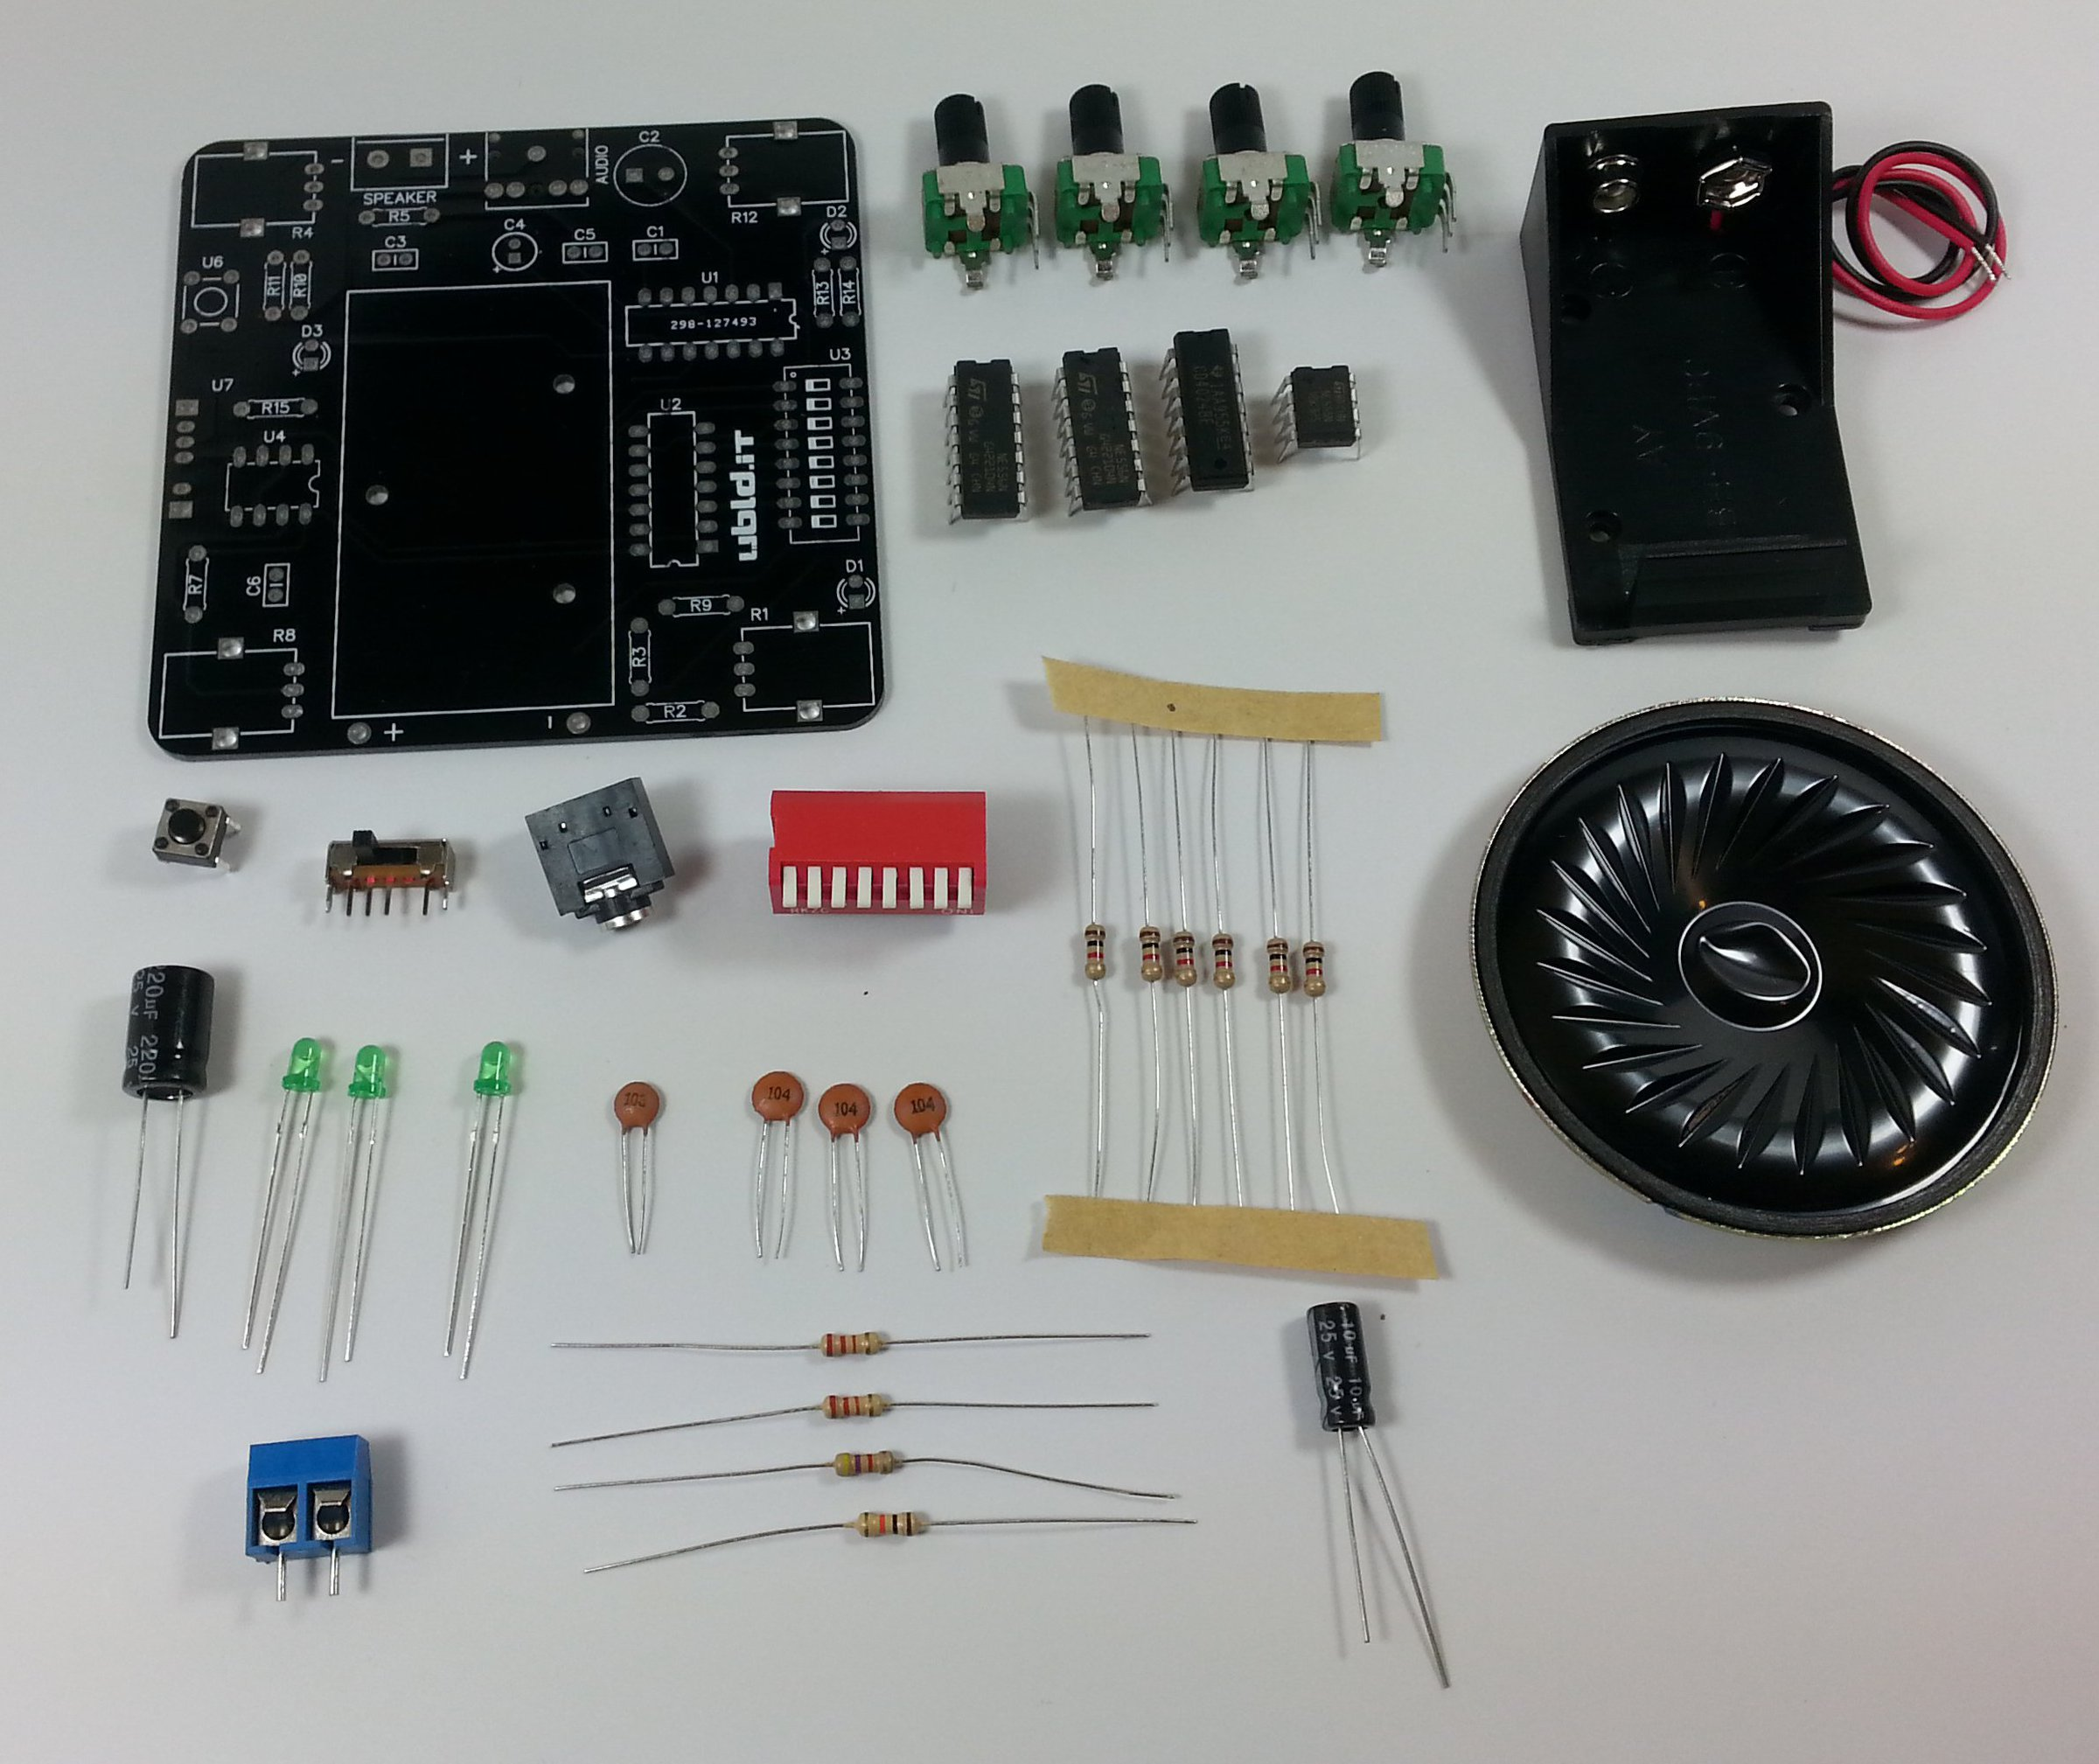 Atari Punkr Kit From Ubldit Electronics On Tindie Learn To Build The Punk Console Electronic Circuits 3